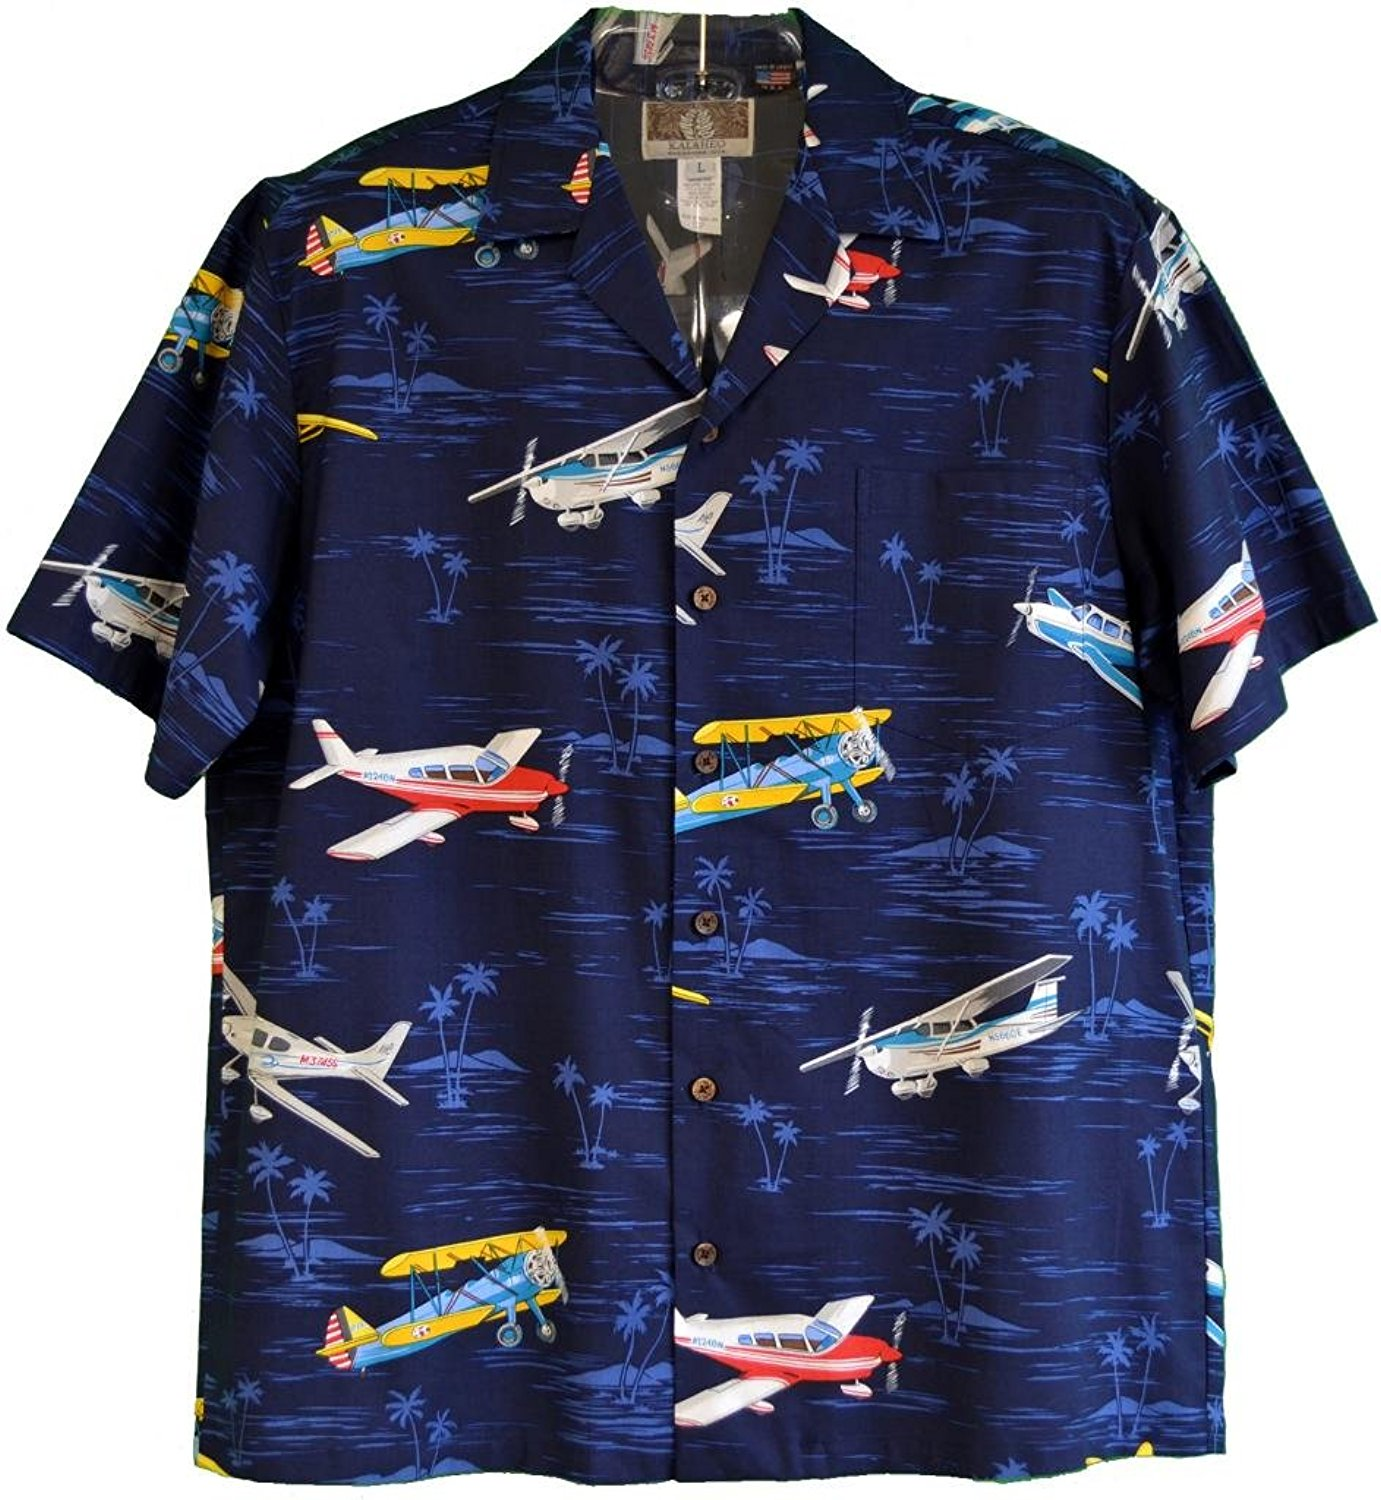 19c916b9 Get Quotations · Fighter Plane Hawaiian Shirts - Mens Hawaiian Shirts - Aloha  Shirt - Hawaiian